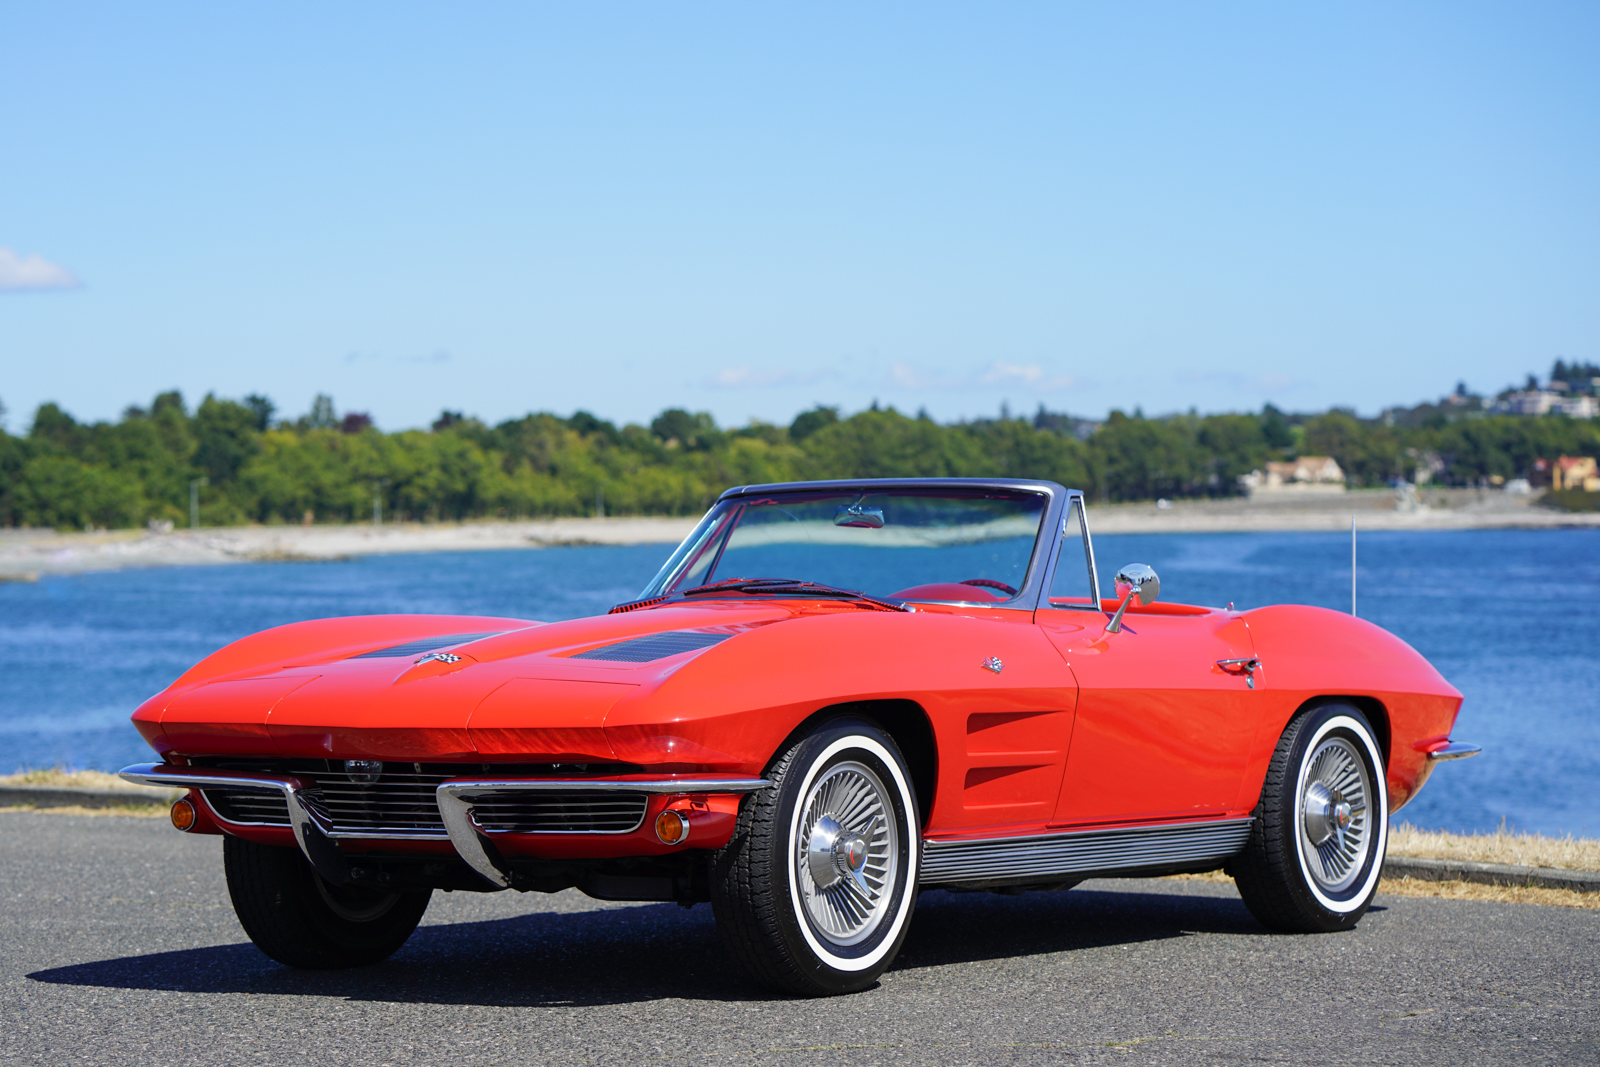 1963 Chevrolet Corvette Sting Ray Convertible for sale